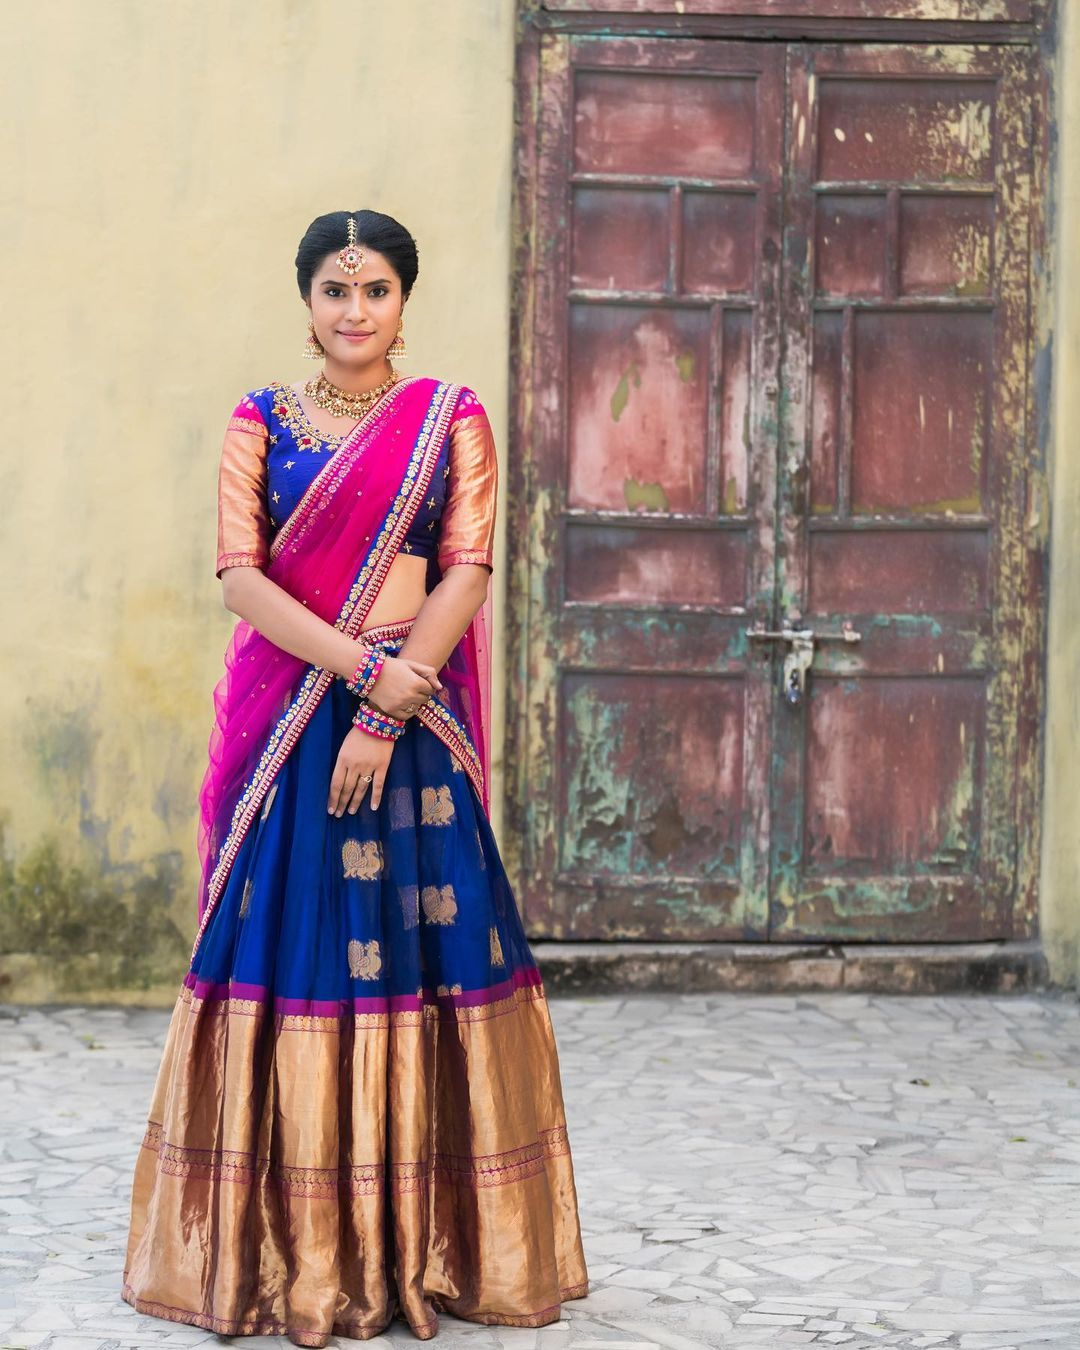 Stunning royal blue color kanchi pattu lehenga with swan motifs and big boarder. Blouse with pattu jari sleeves and hand embroidery work.  2021-06-03